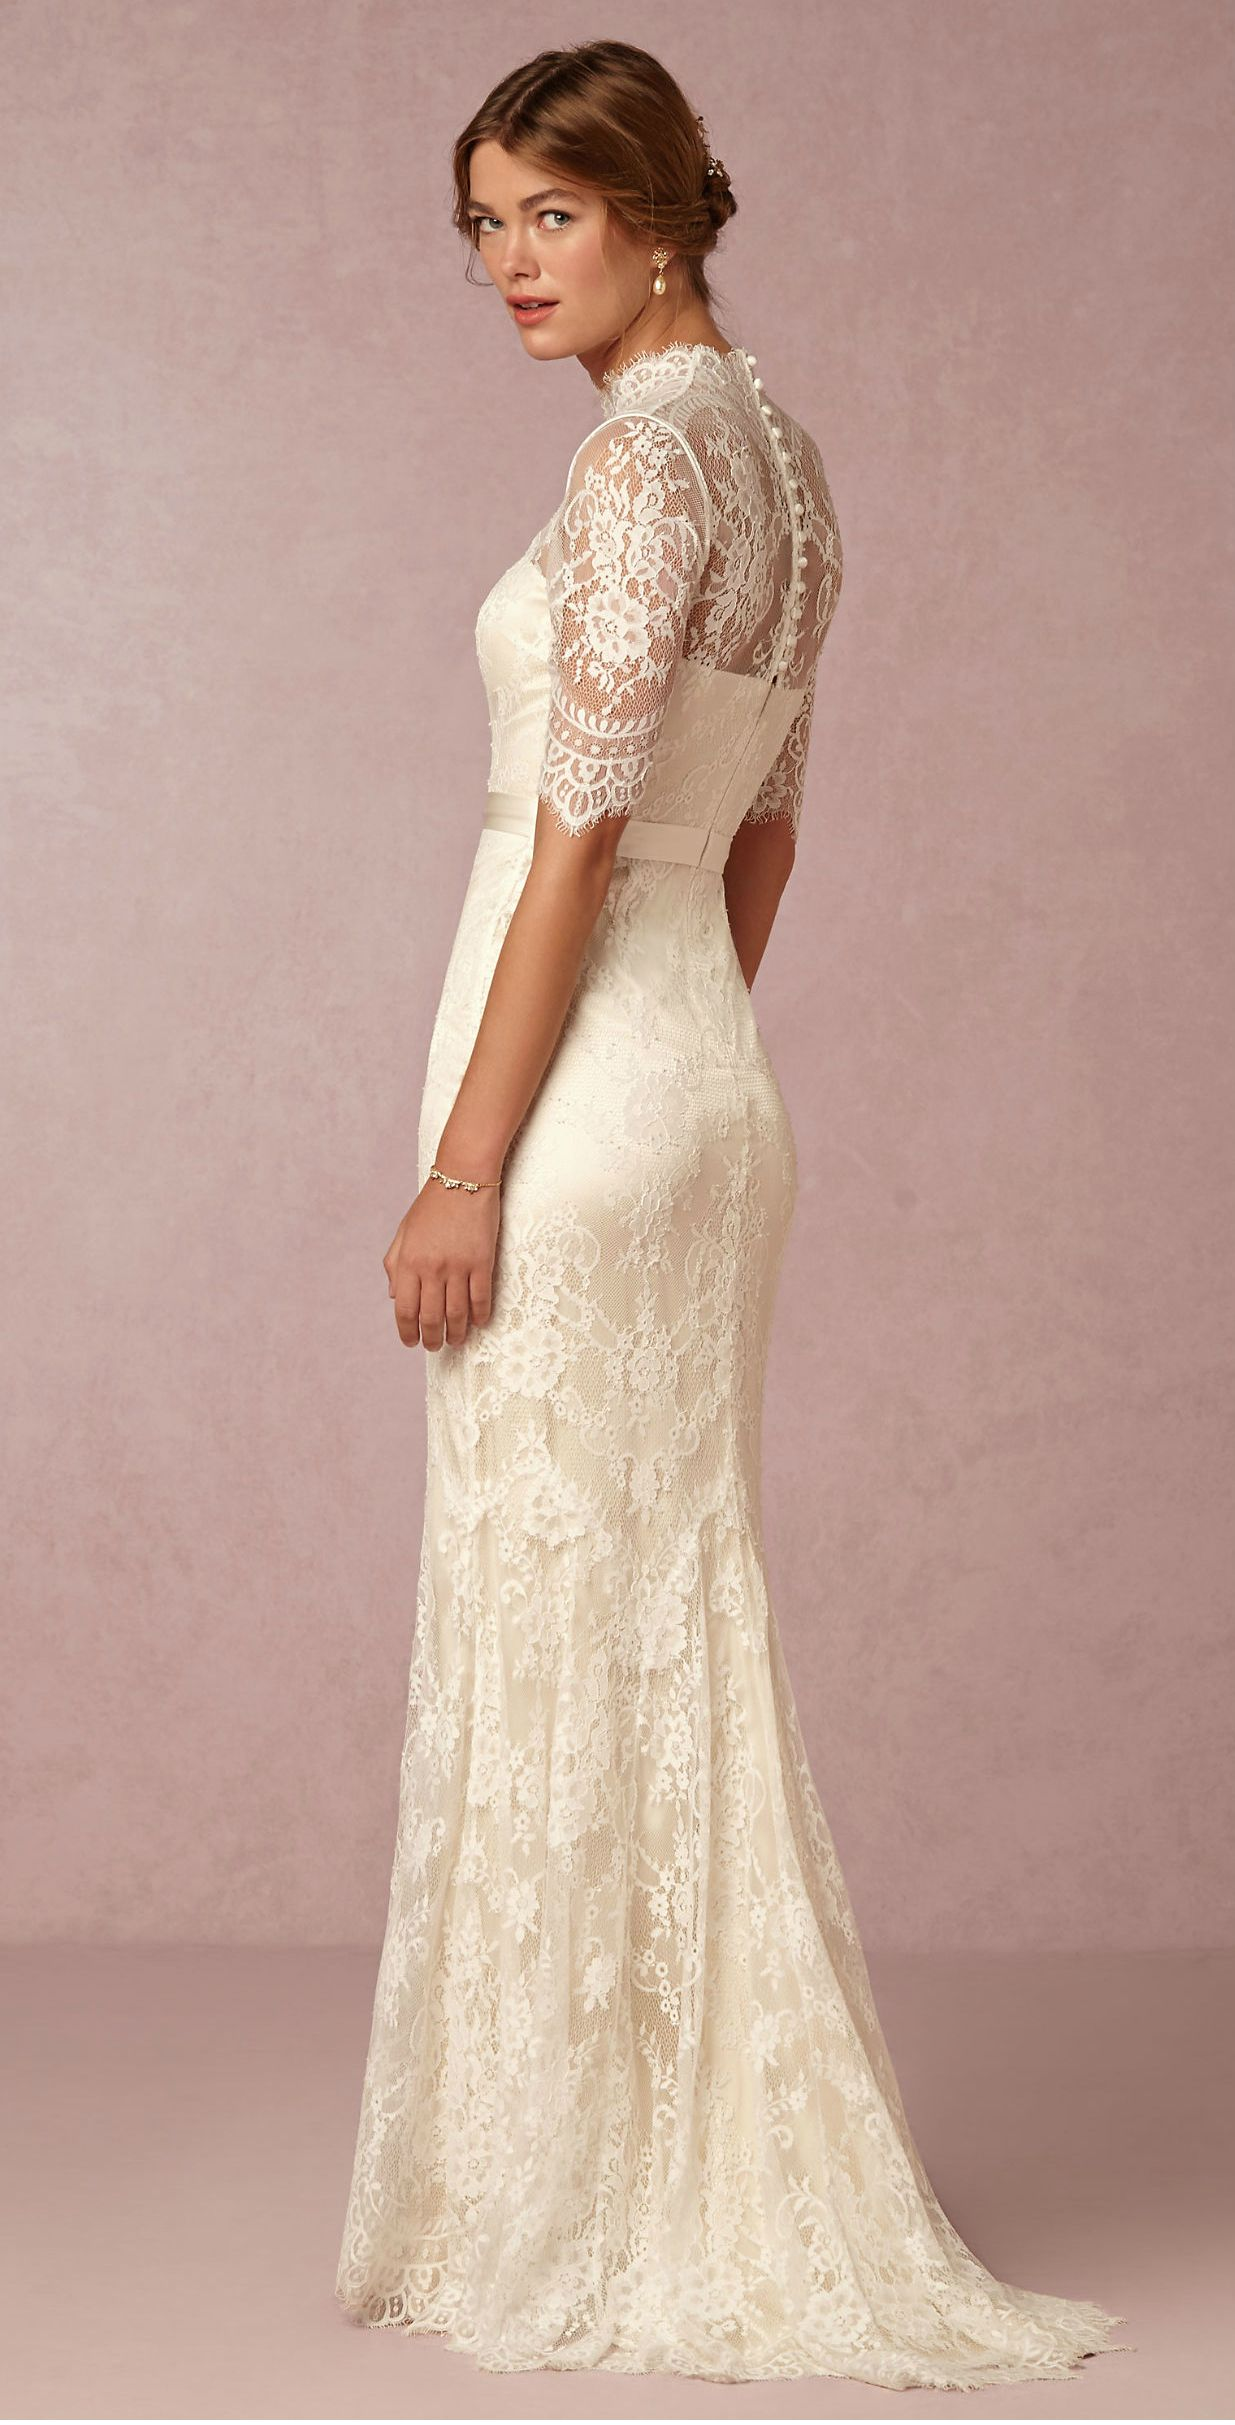 New Wedding Dresses from BHLDN for Fall 2015 | Novios, Vestidos de ...